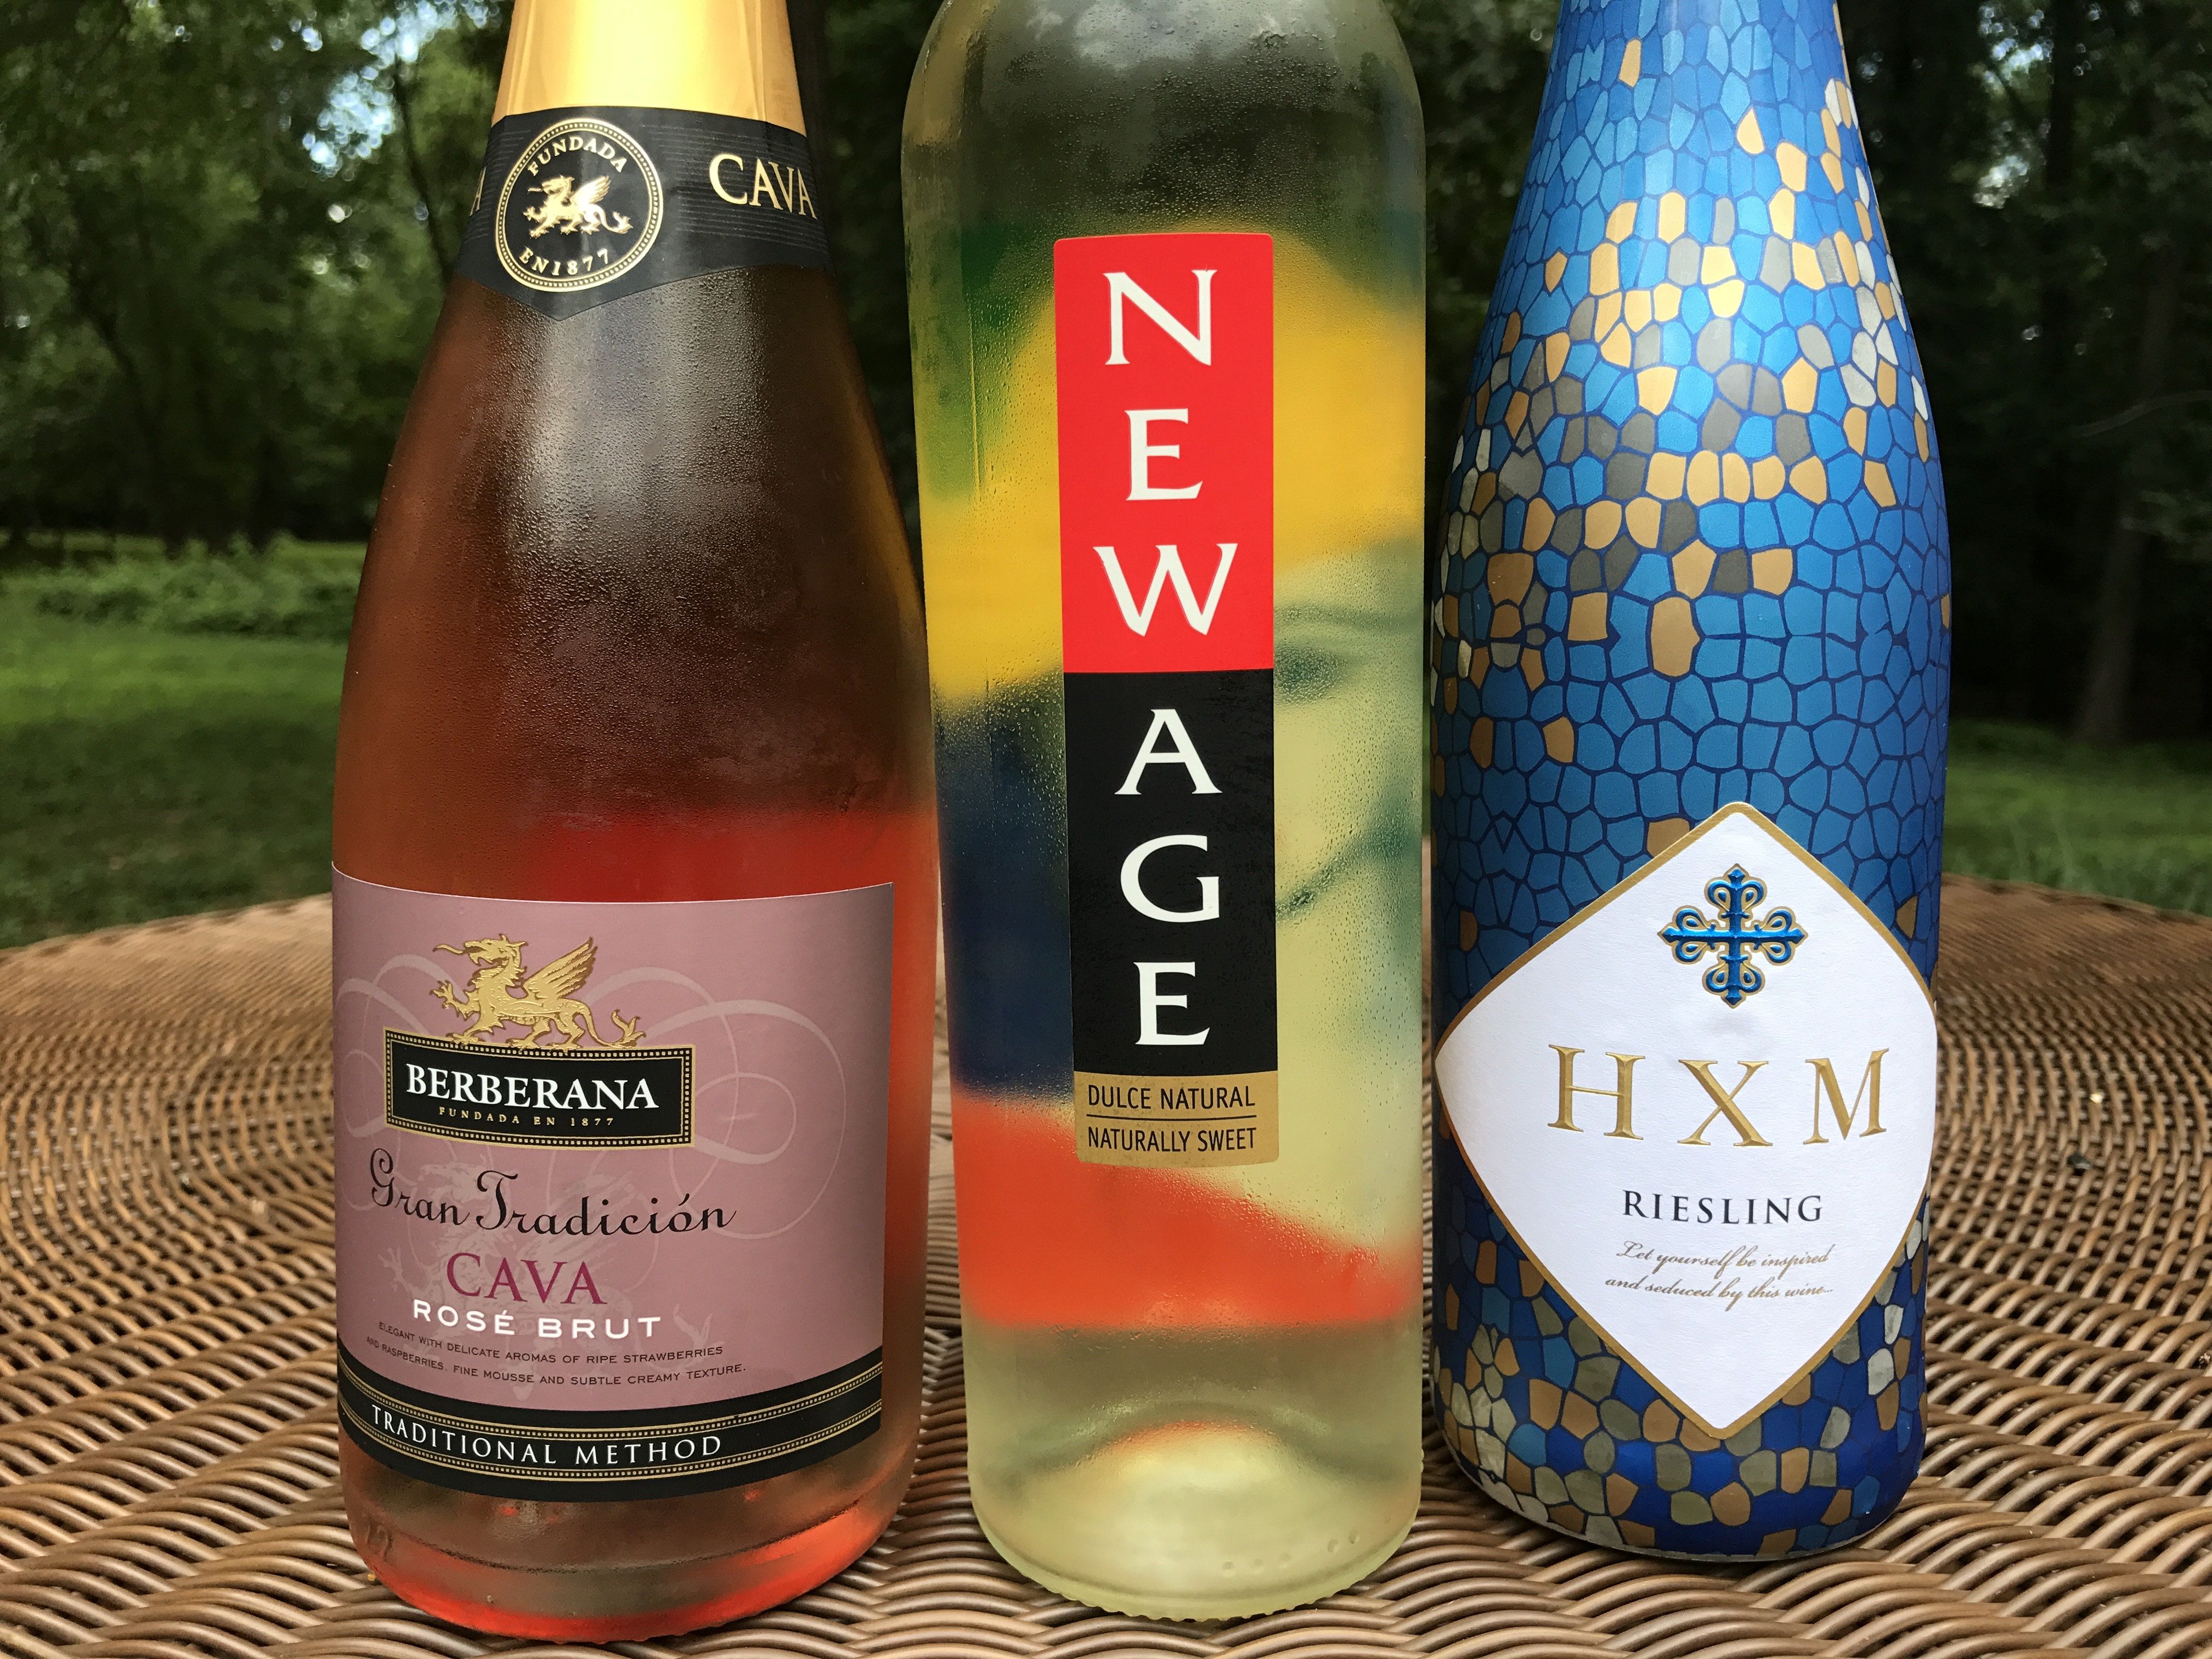 Red White and Blue Wines for the 4th of July